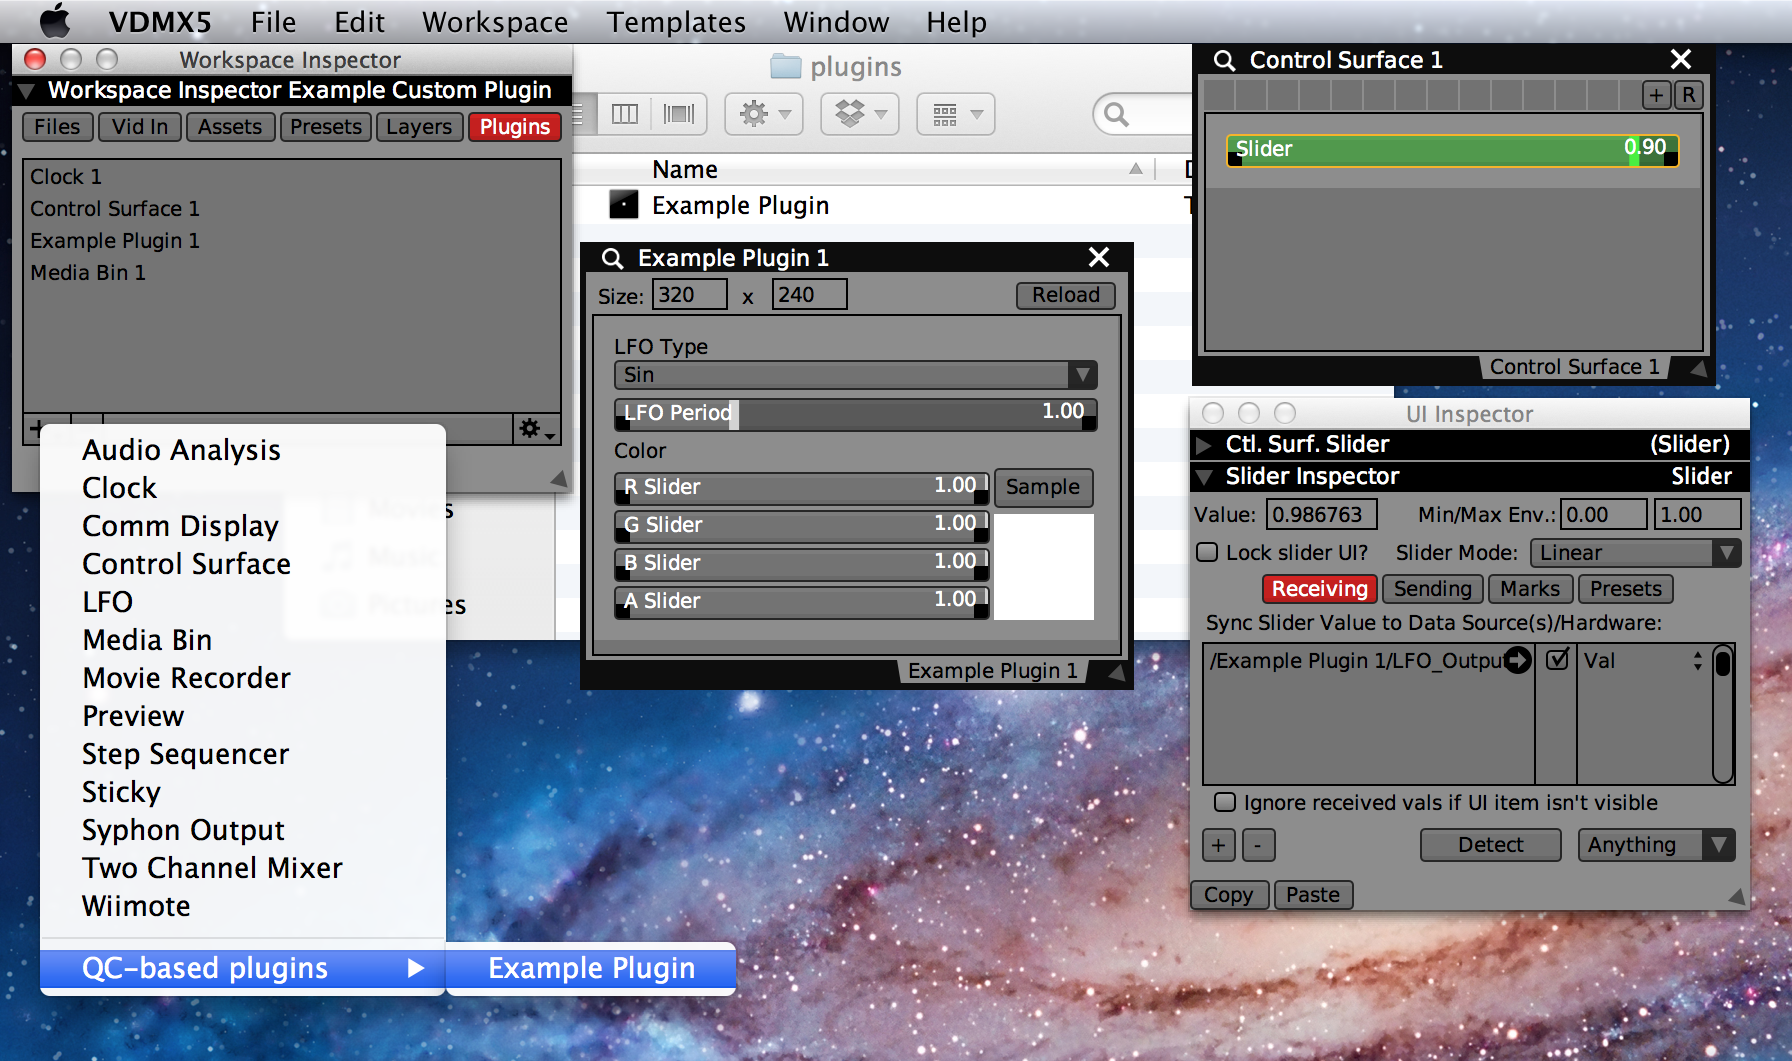 Adding the example plugin to the VDMX project.